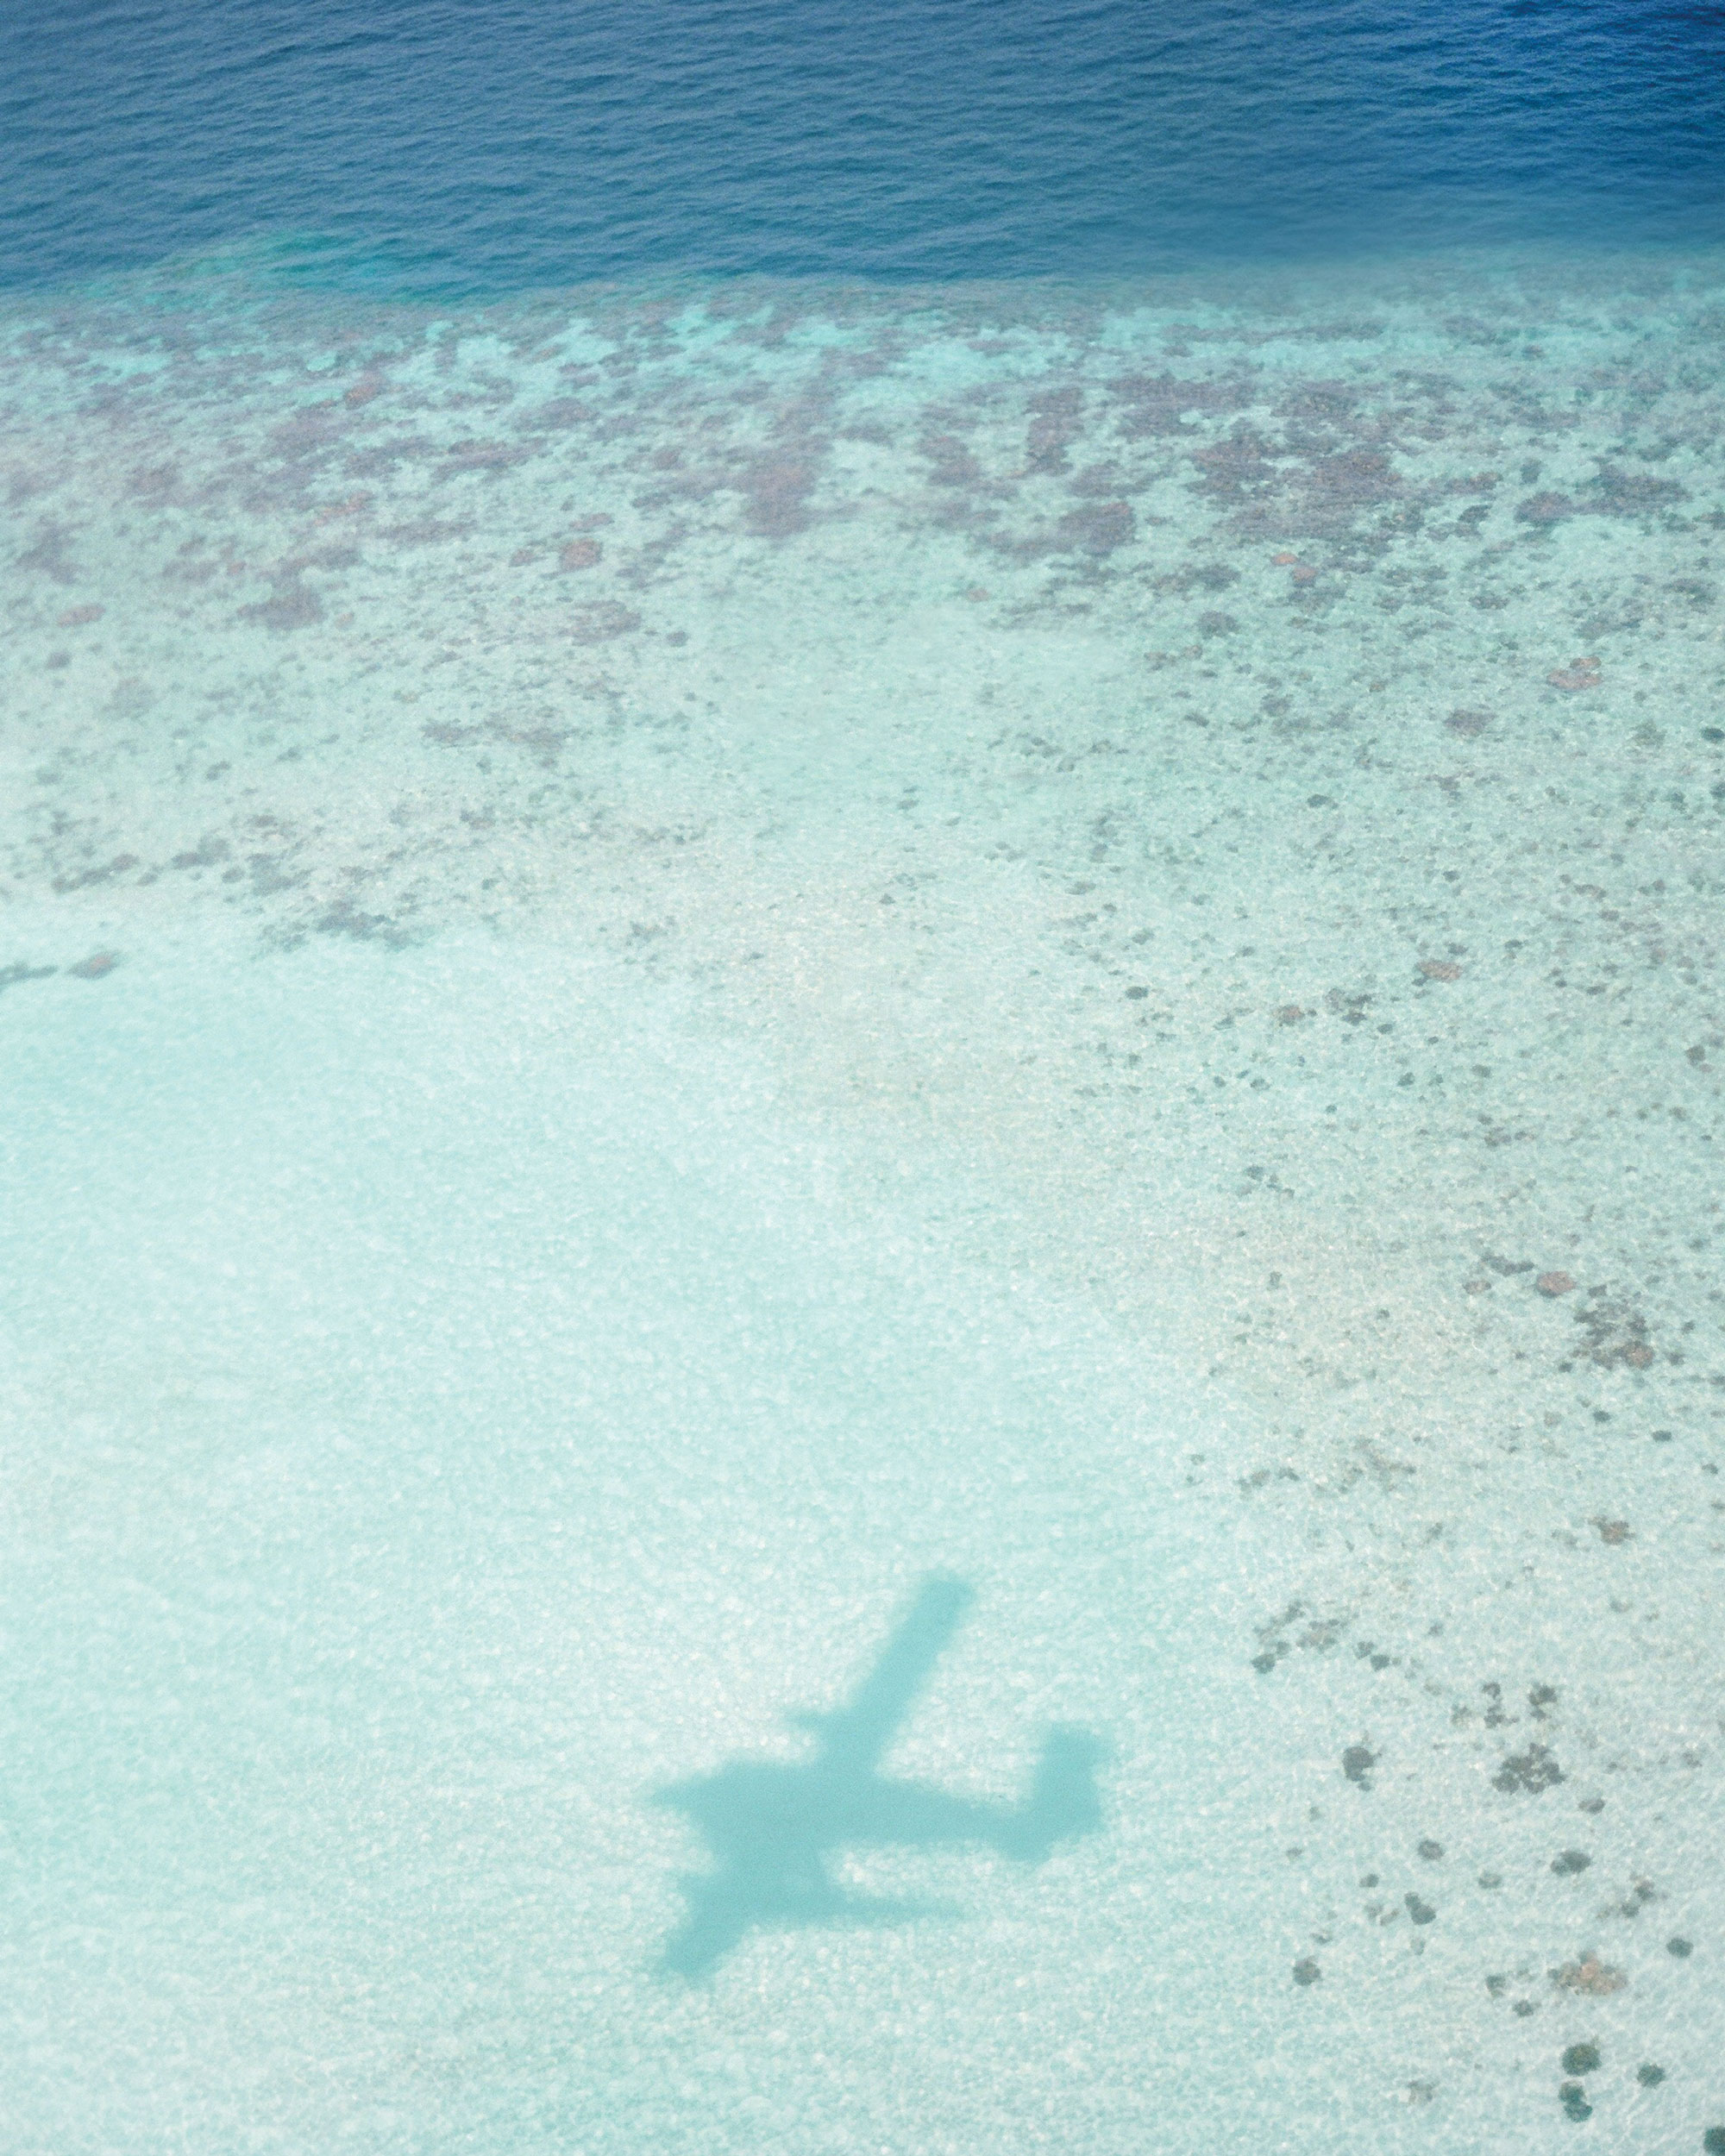 peony-richard-wedding-maldives-airplane-shadow-in-sand-0015-s112383.jpg